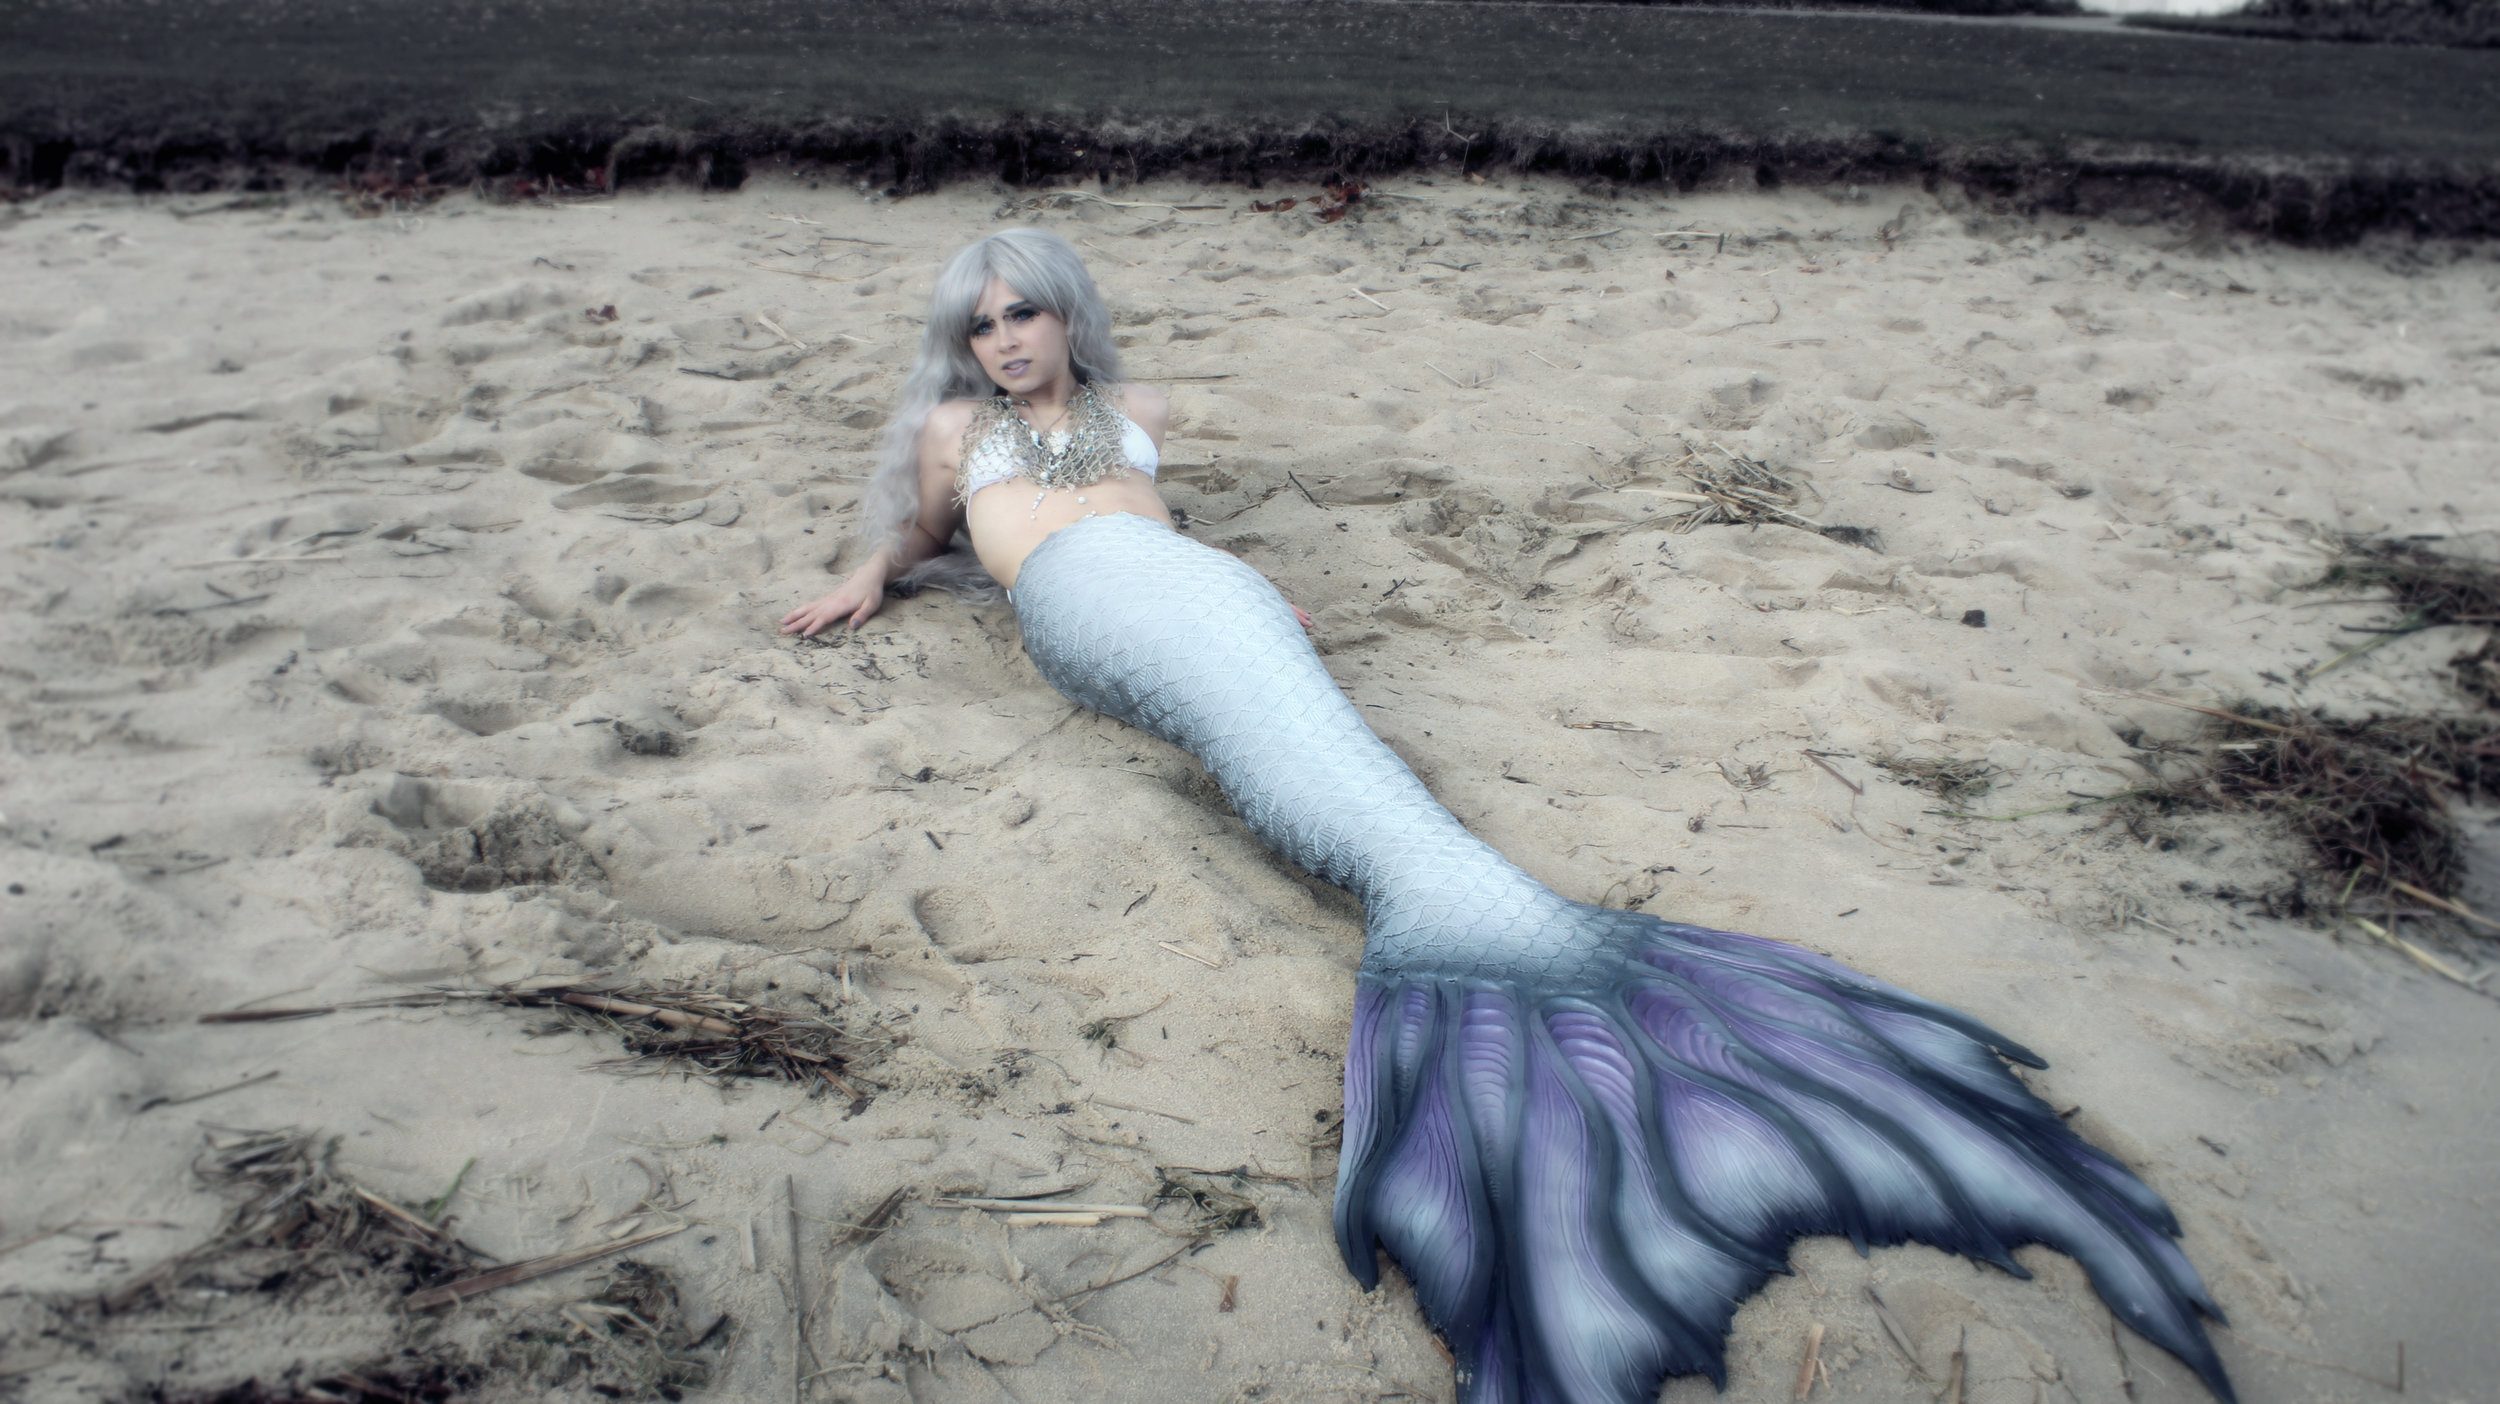 The-mermaid-ghost-mermaidphantom-themagiccrafter.jpg